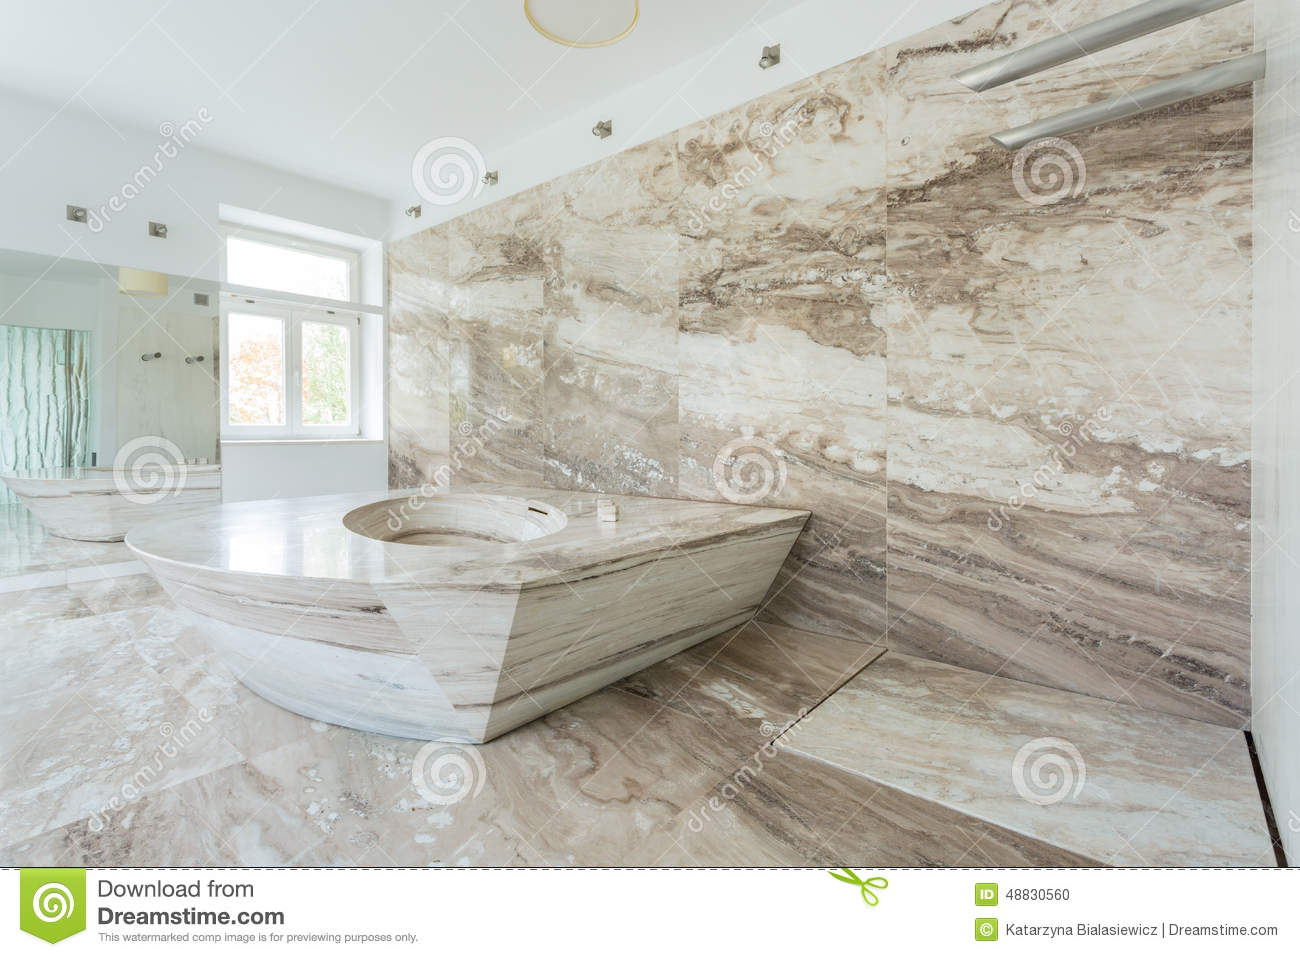 Luxury Bathroom With Marble Tiles Stock Photo - Image: 48830560